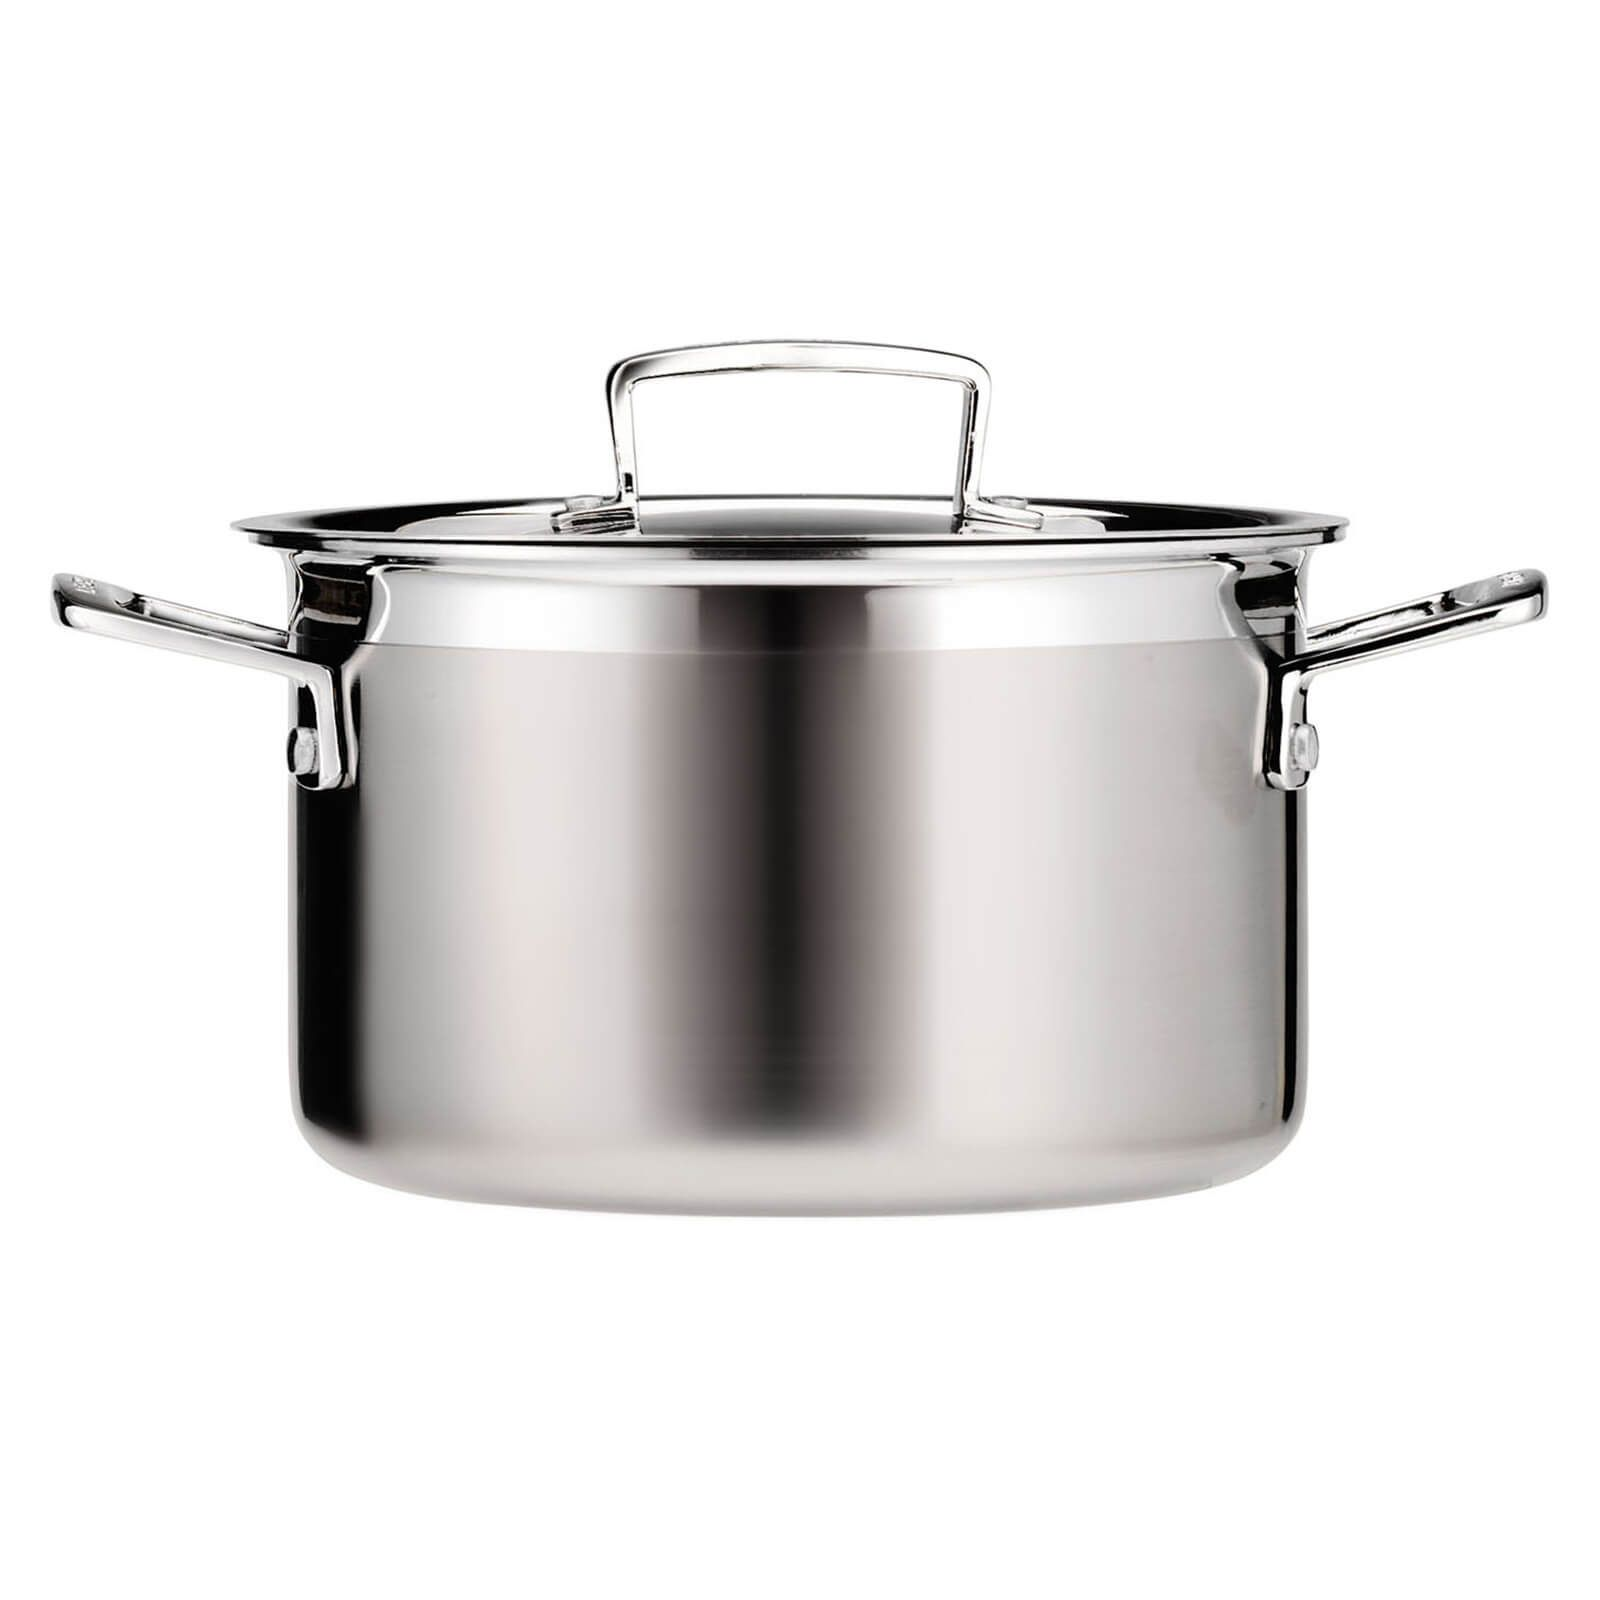 Dutch Oven Buch Le Creuset 3 Ply Stainless Steel Deep Casserole Dish 20cm In